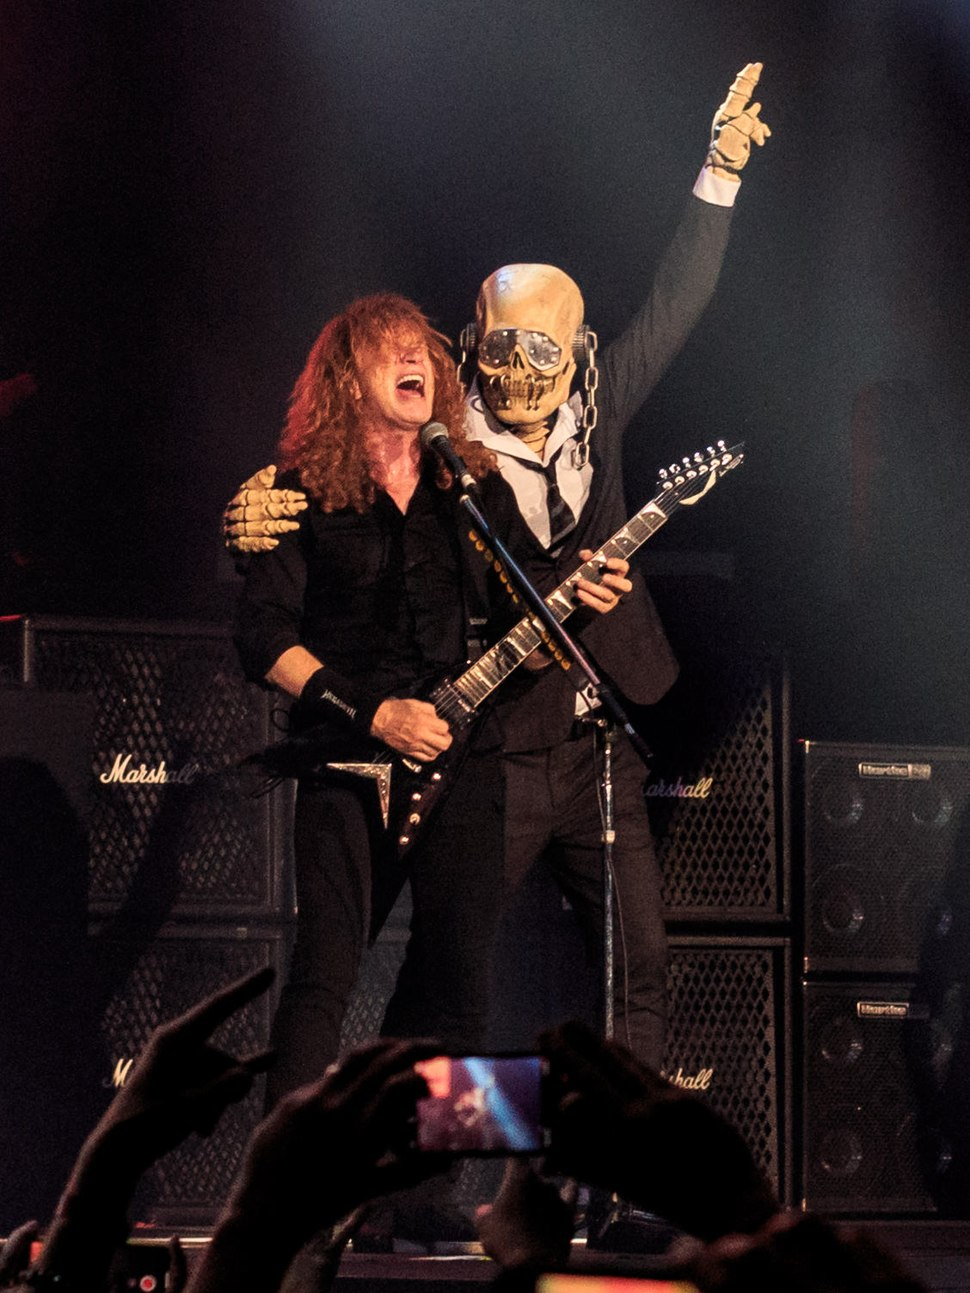 Dave Mustaine and Vic Rattlehead